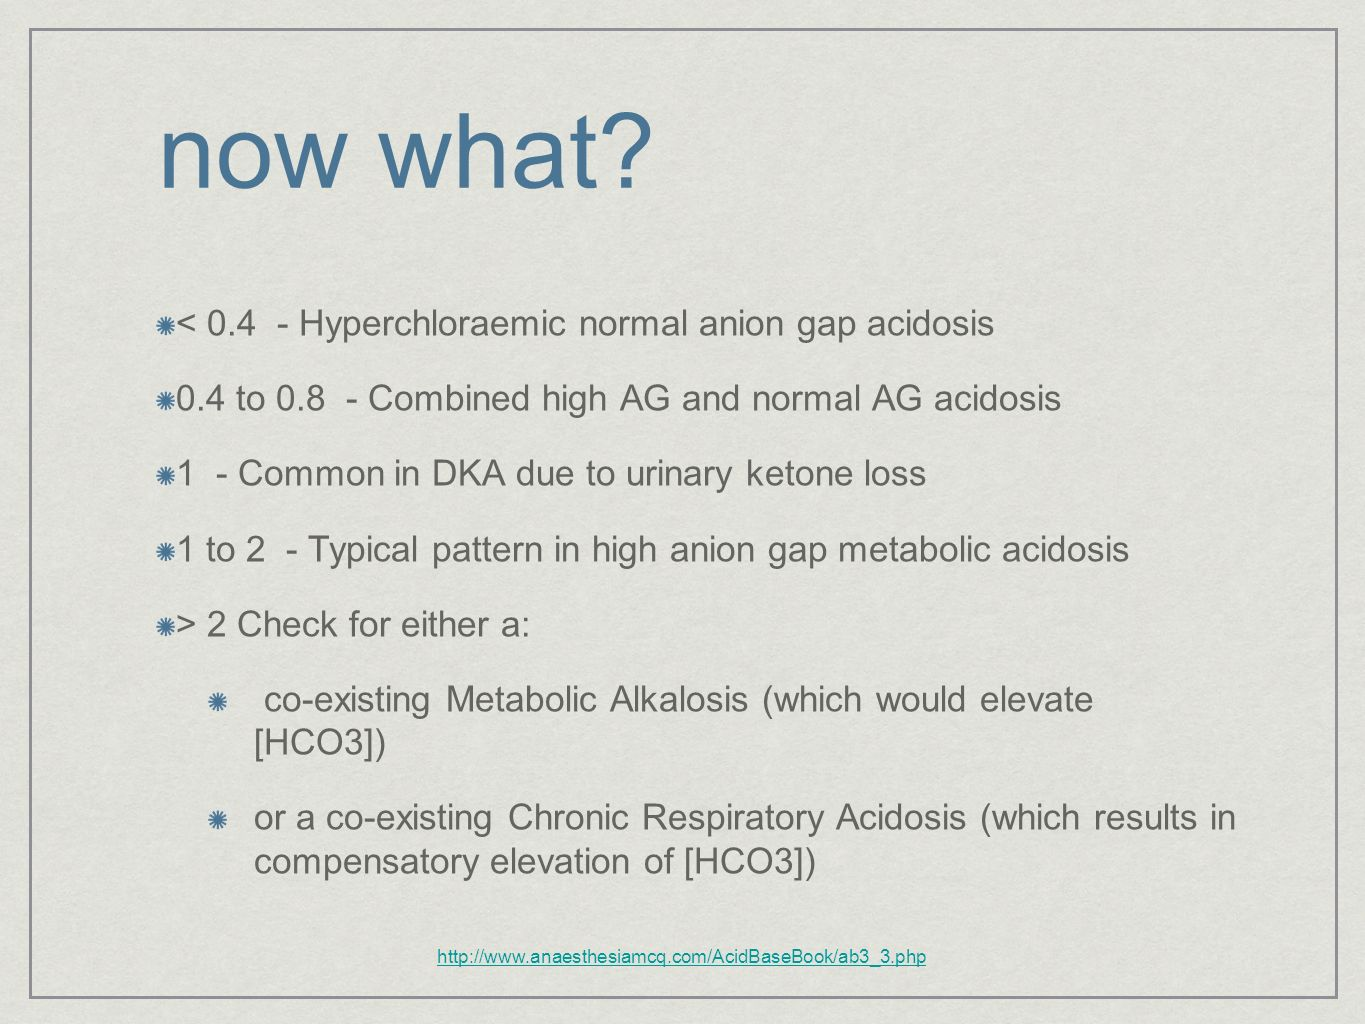 now what < Hyperchloraemic normal anion gap acidosis